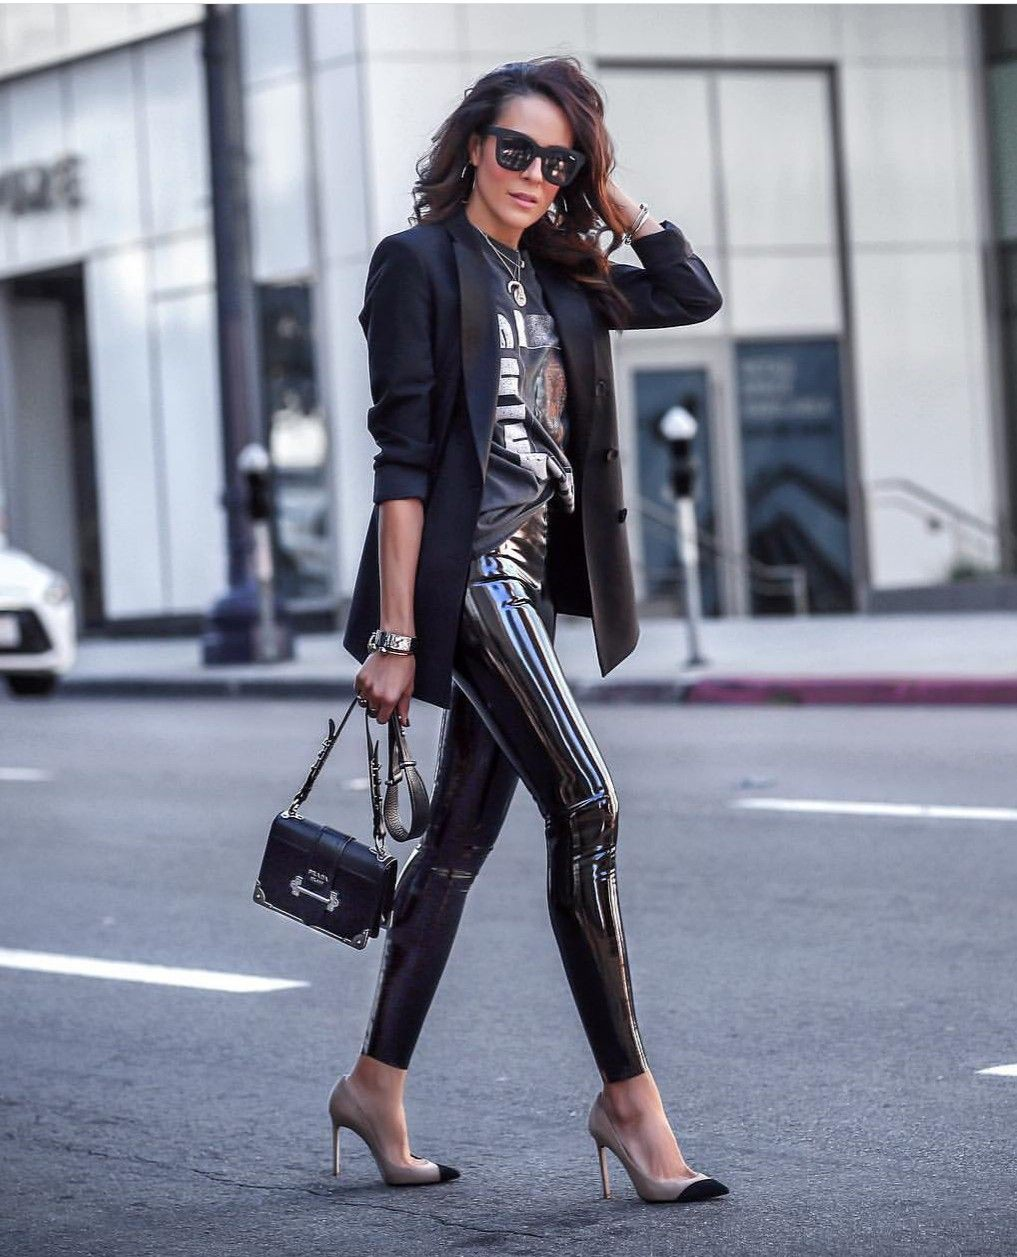 Black outfit ideas with leather jacket, trousers, leggings